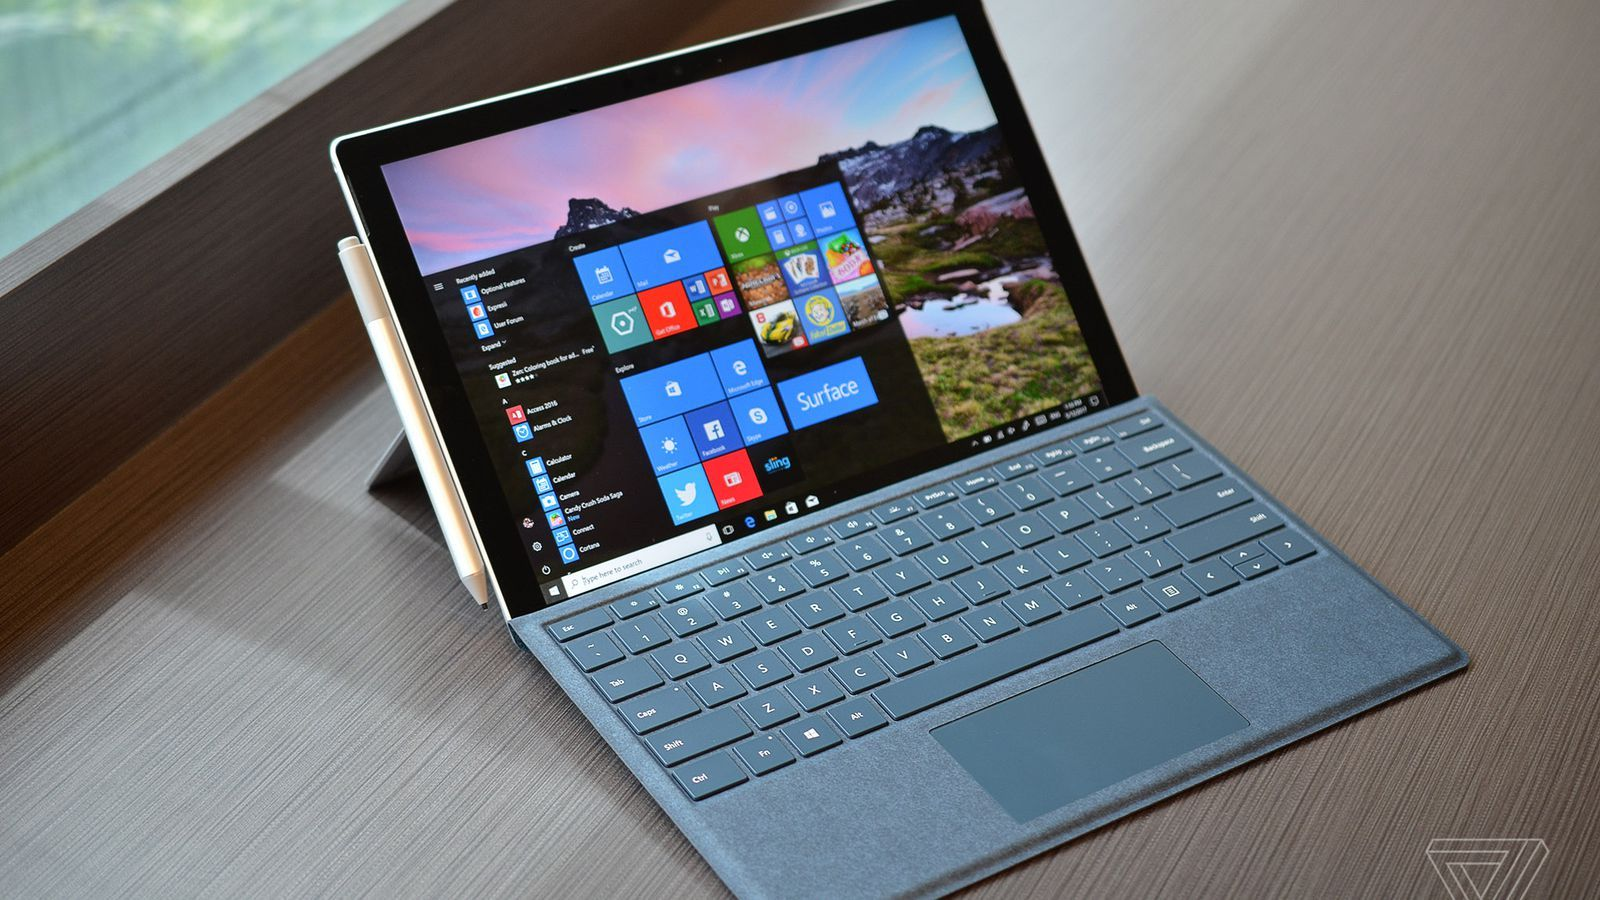 Microsoft's new Surface Pro has 13.5 hours of battery life